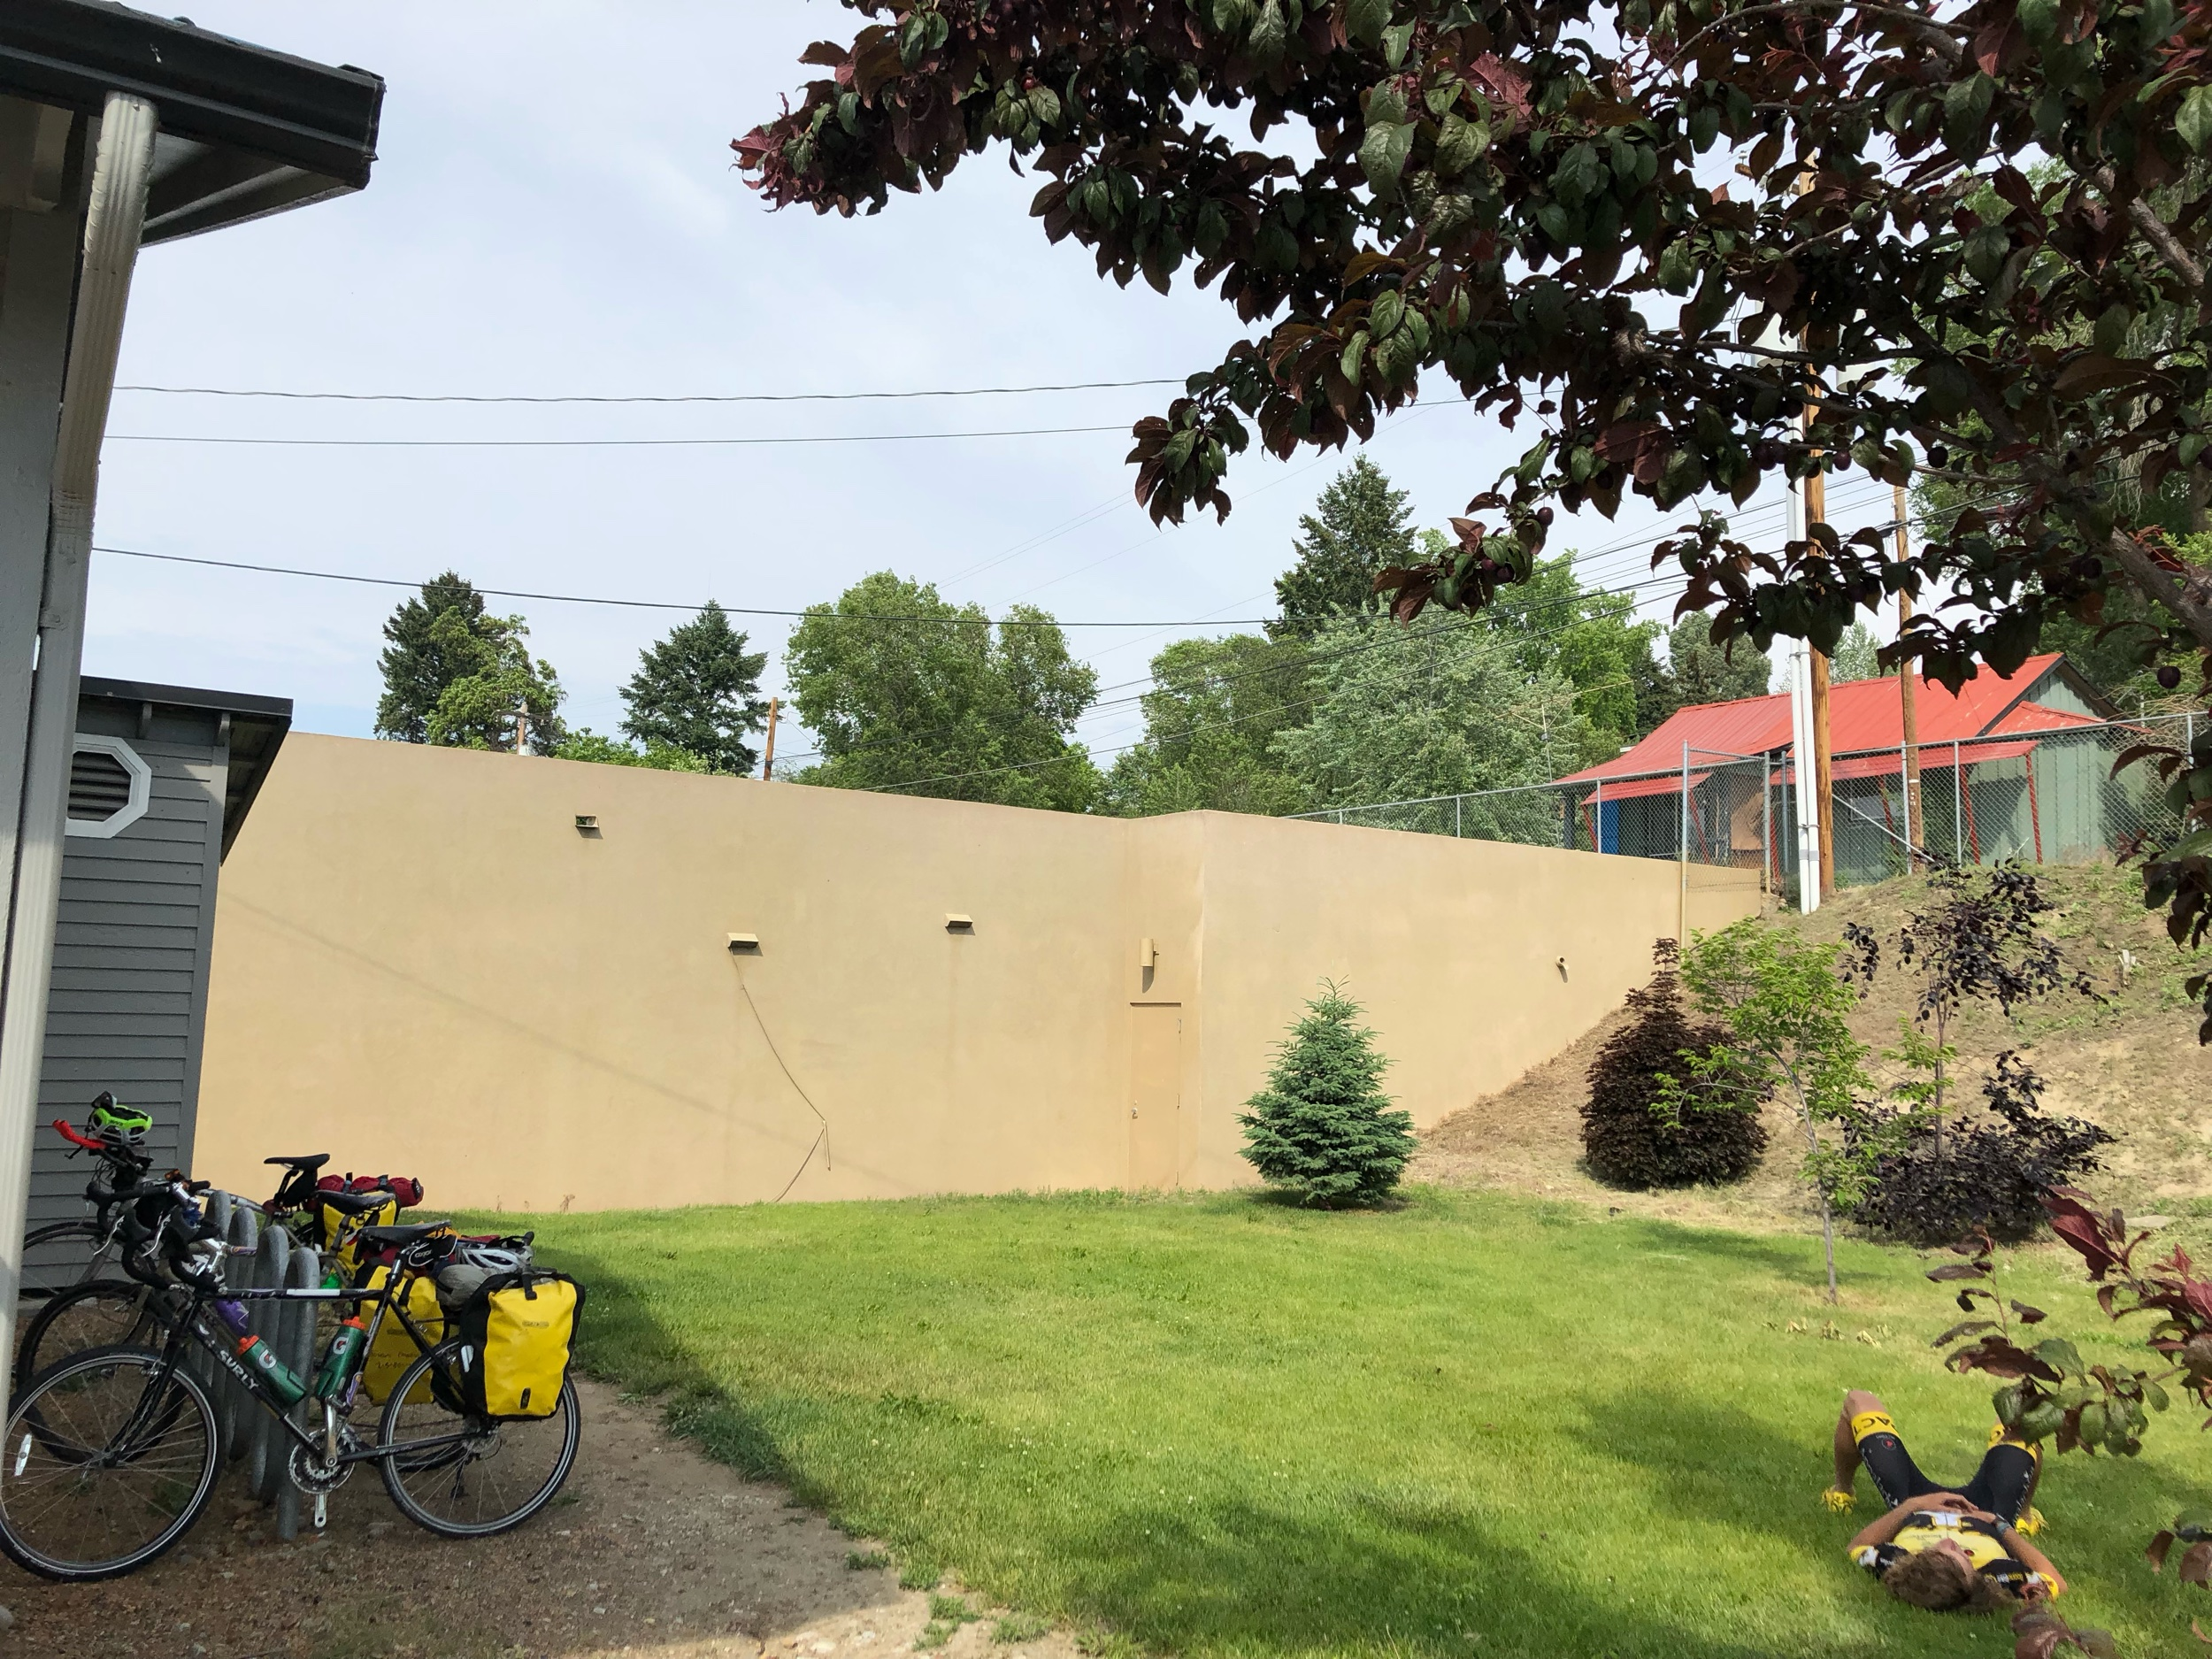 Bikers-only campground in Tonasket, WA